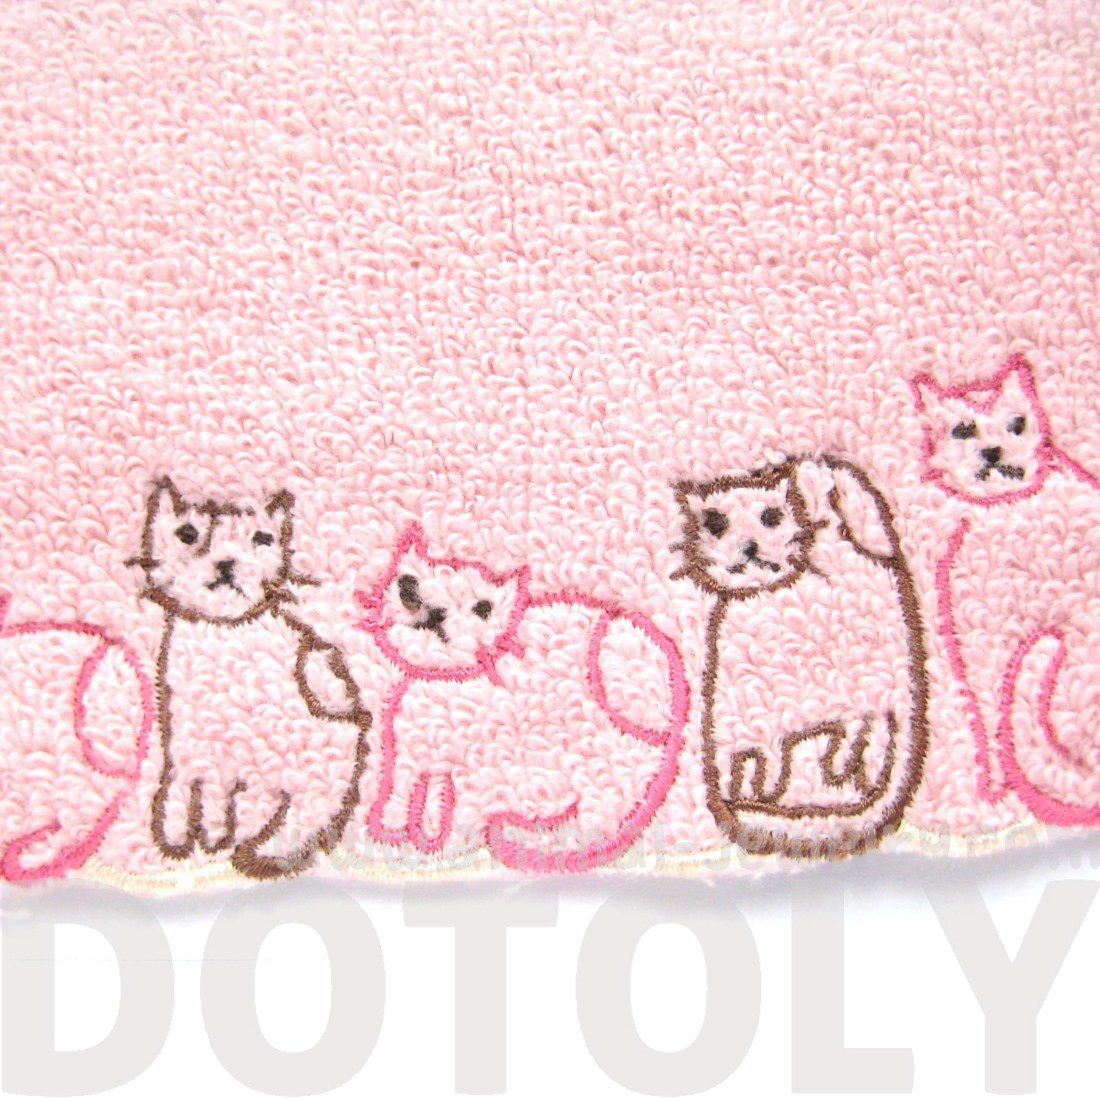 Cat Themed Kitchen Towels: Embroidered Kitty Cat Animal Themed Handkerchief Face